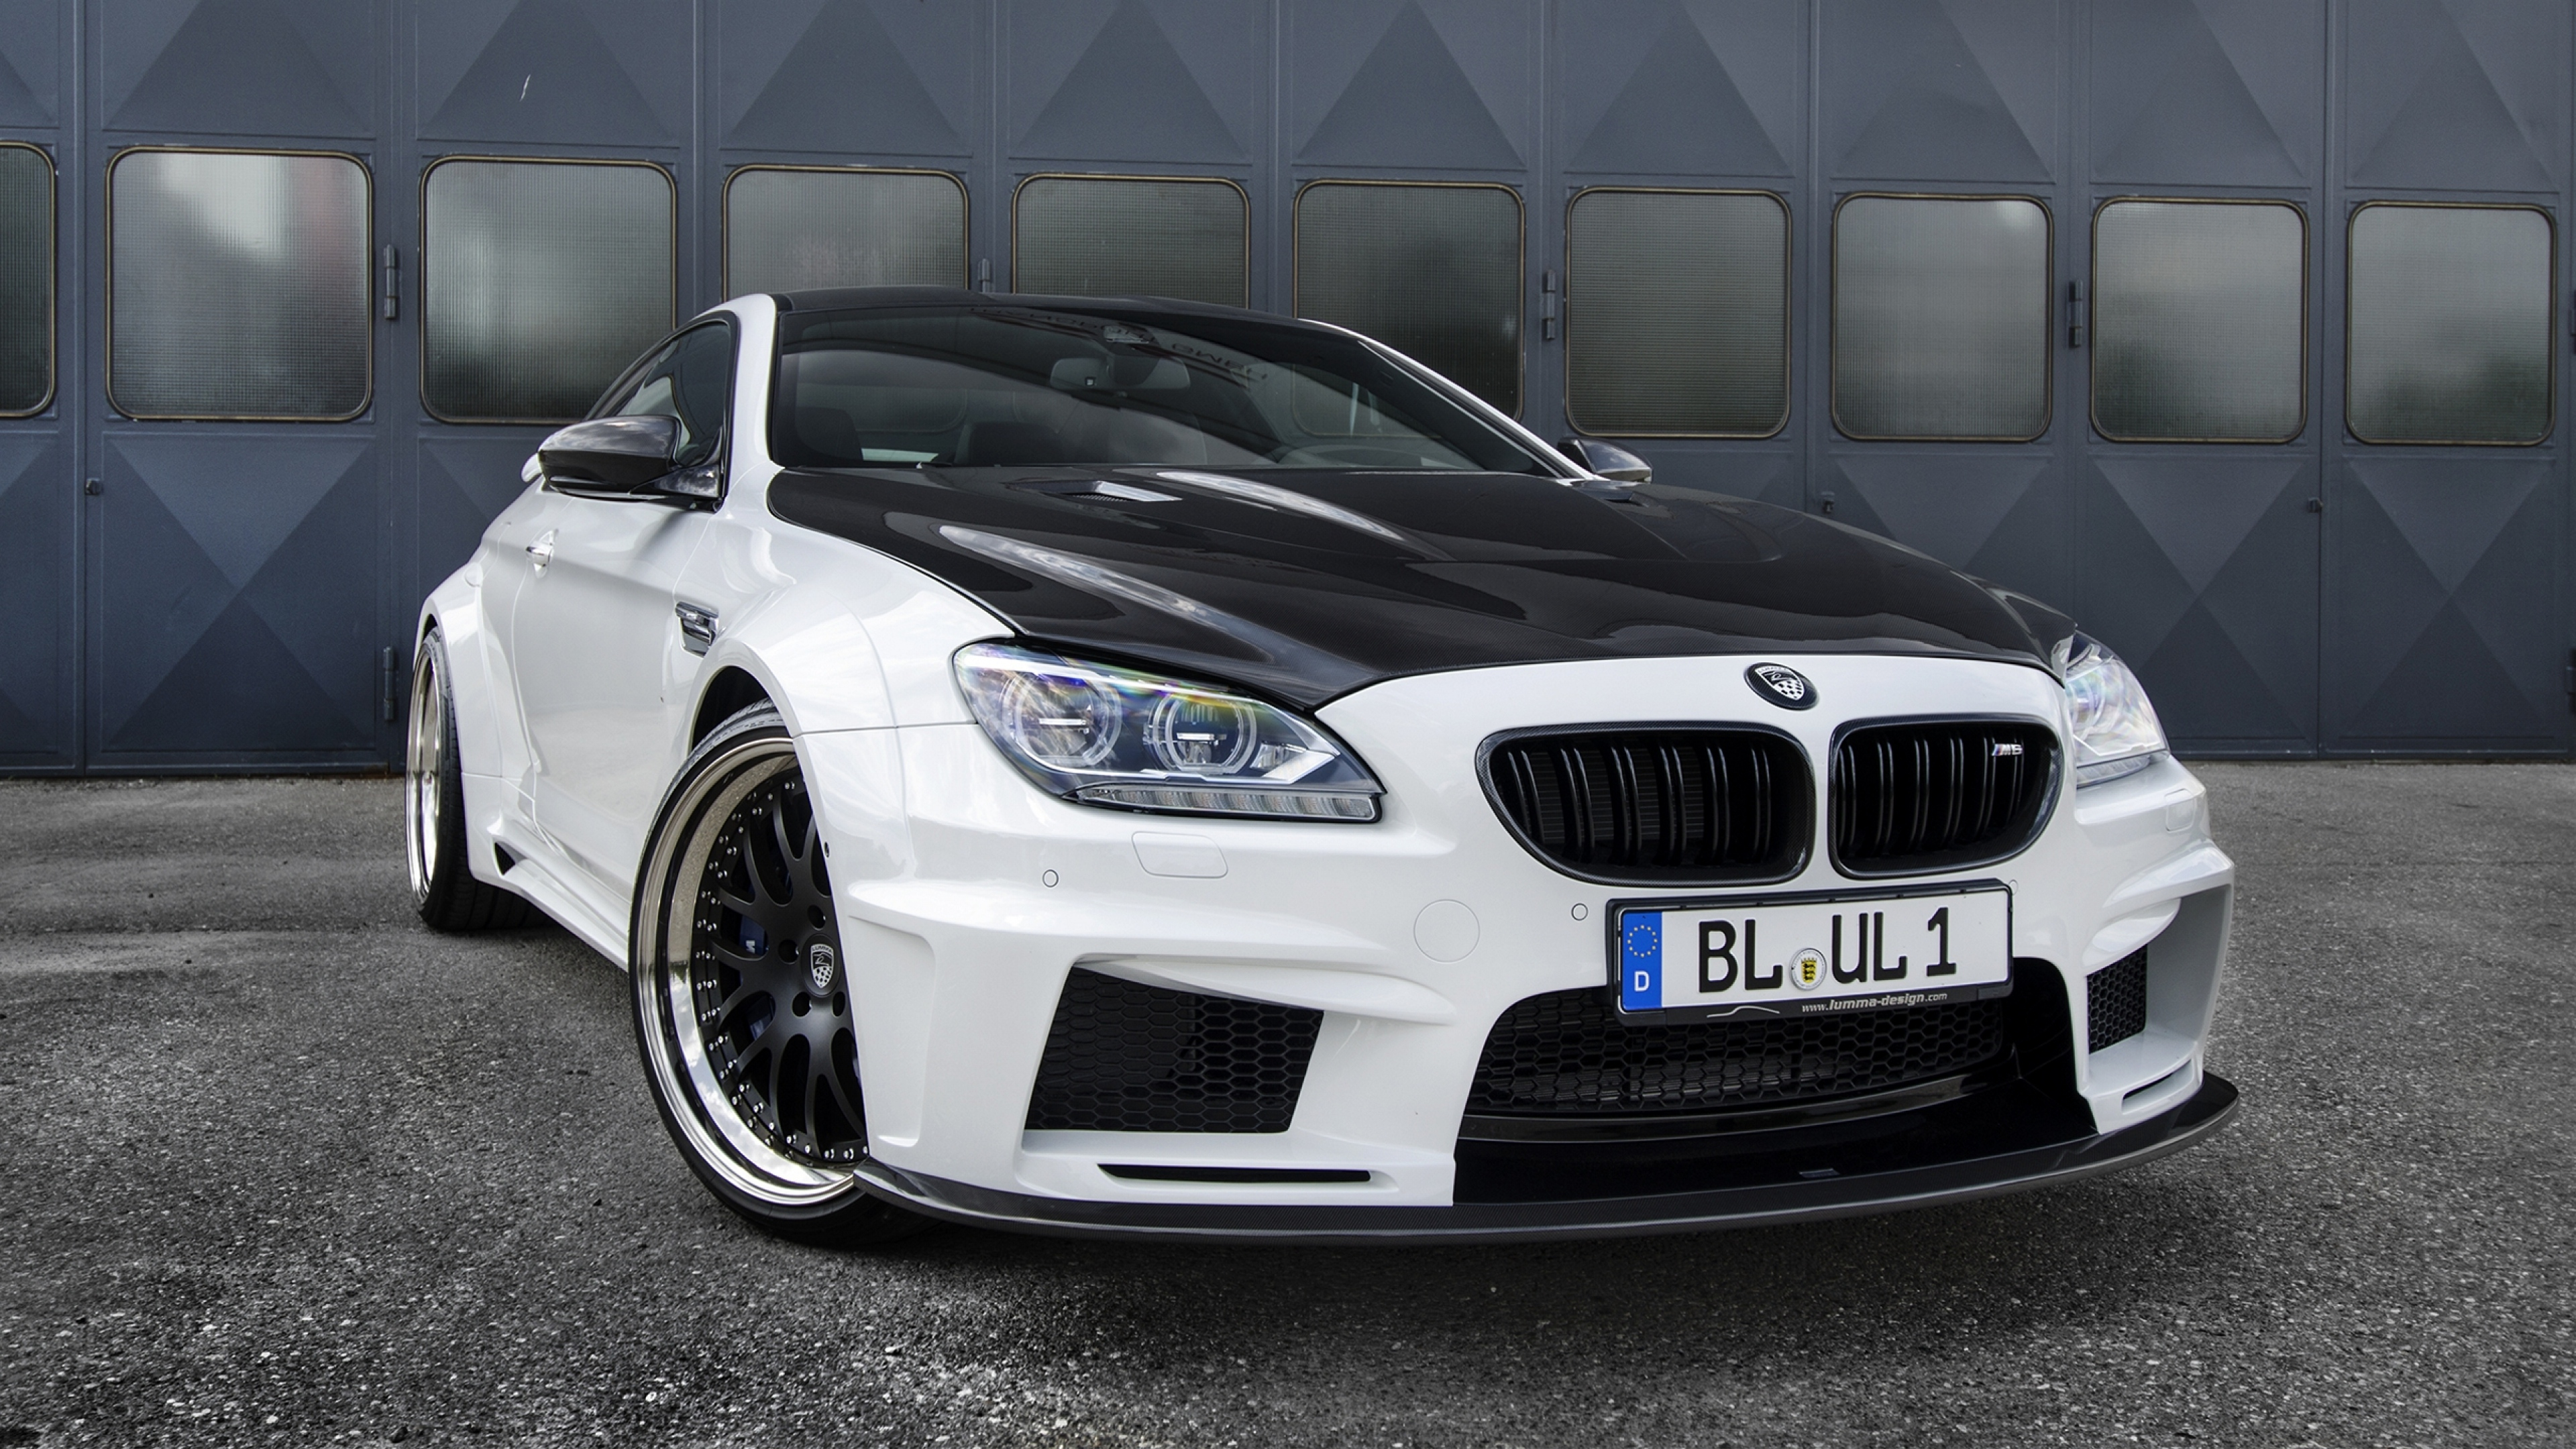 Bmw M6 Wallpapers Top Free Bmw M6 Backgrounds Wallpaperaccess